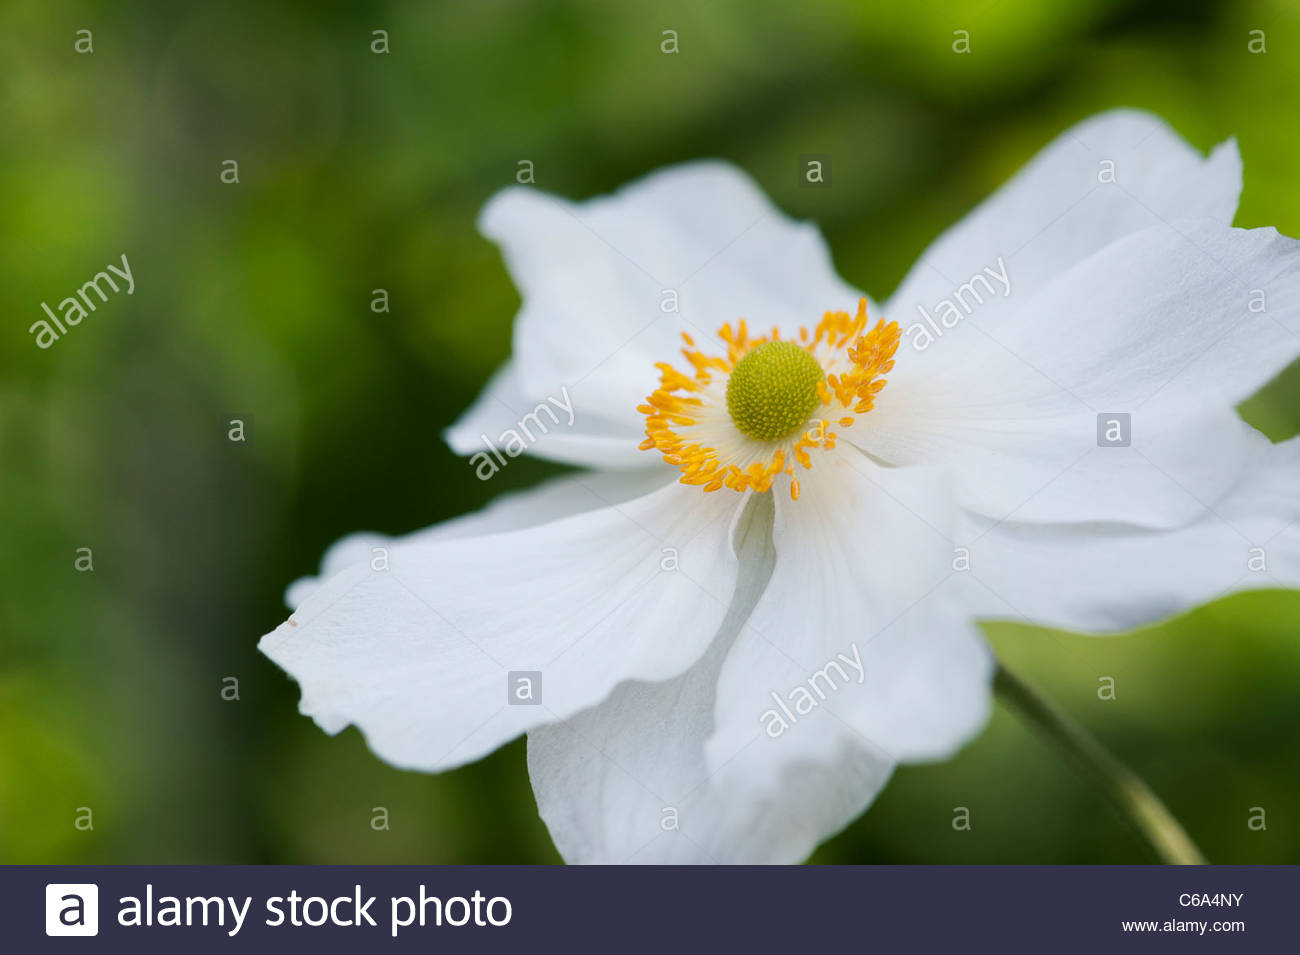 Pure immagini pure fotos stock alamy for Anemone giapponese